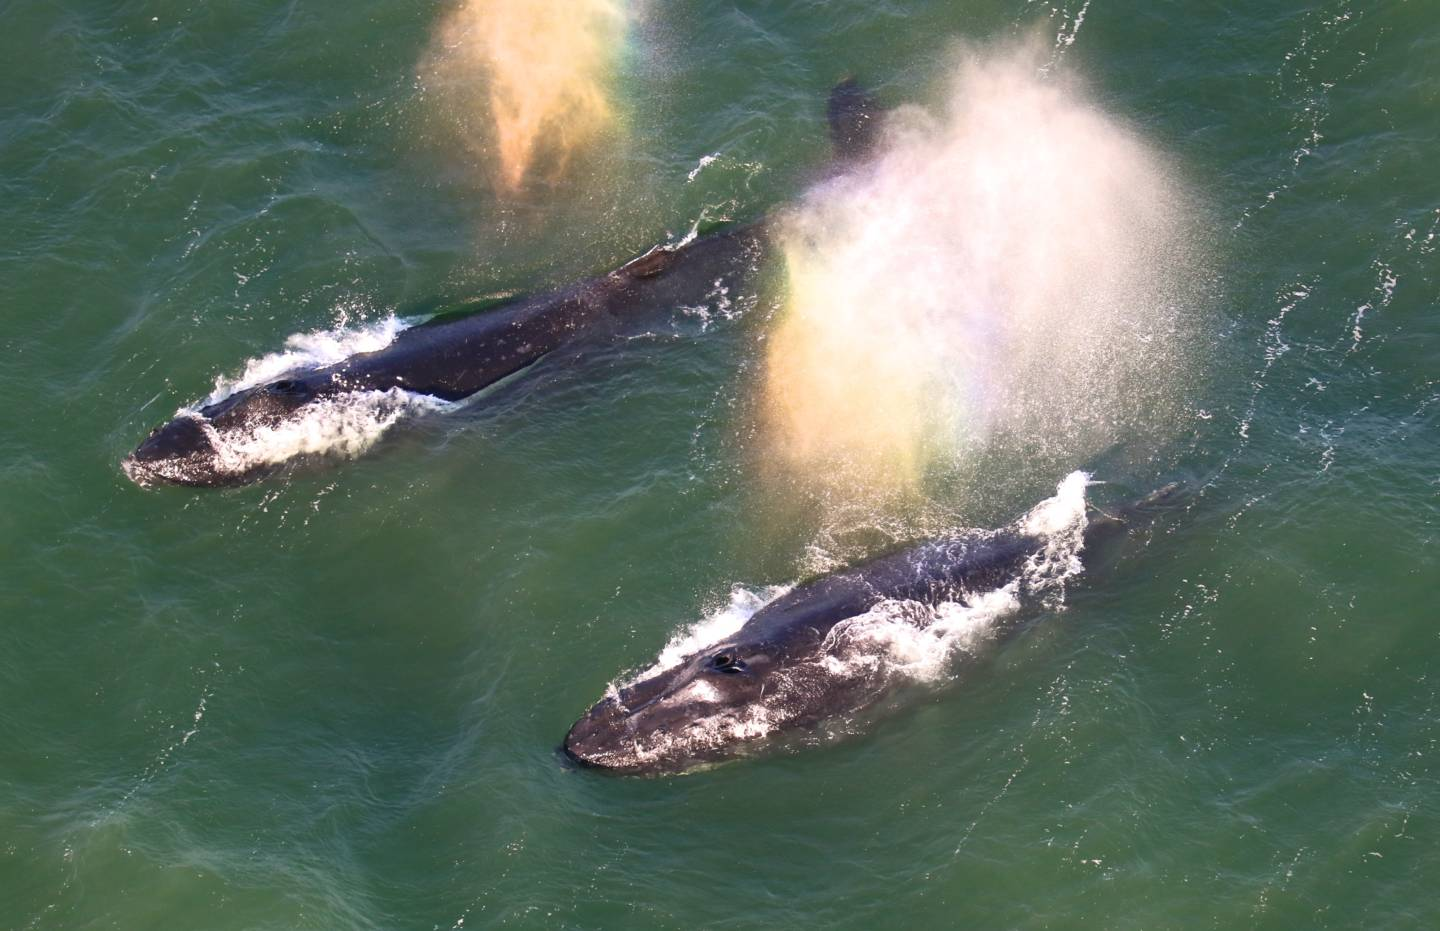 Two humpbacks whales sighted inside the bay on May 15. Bill Keener/Golden Gate Cetacean Research